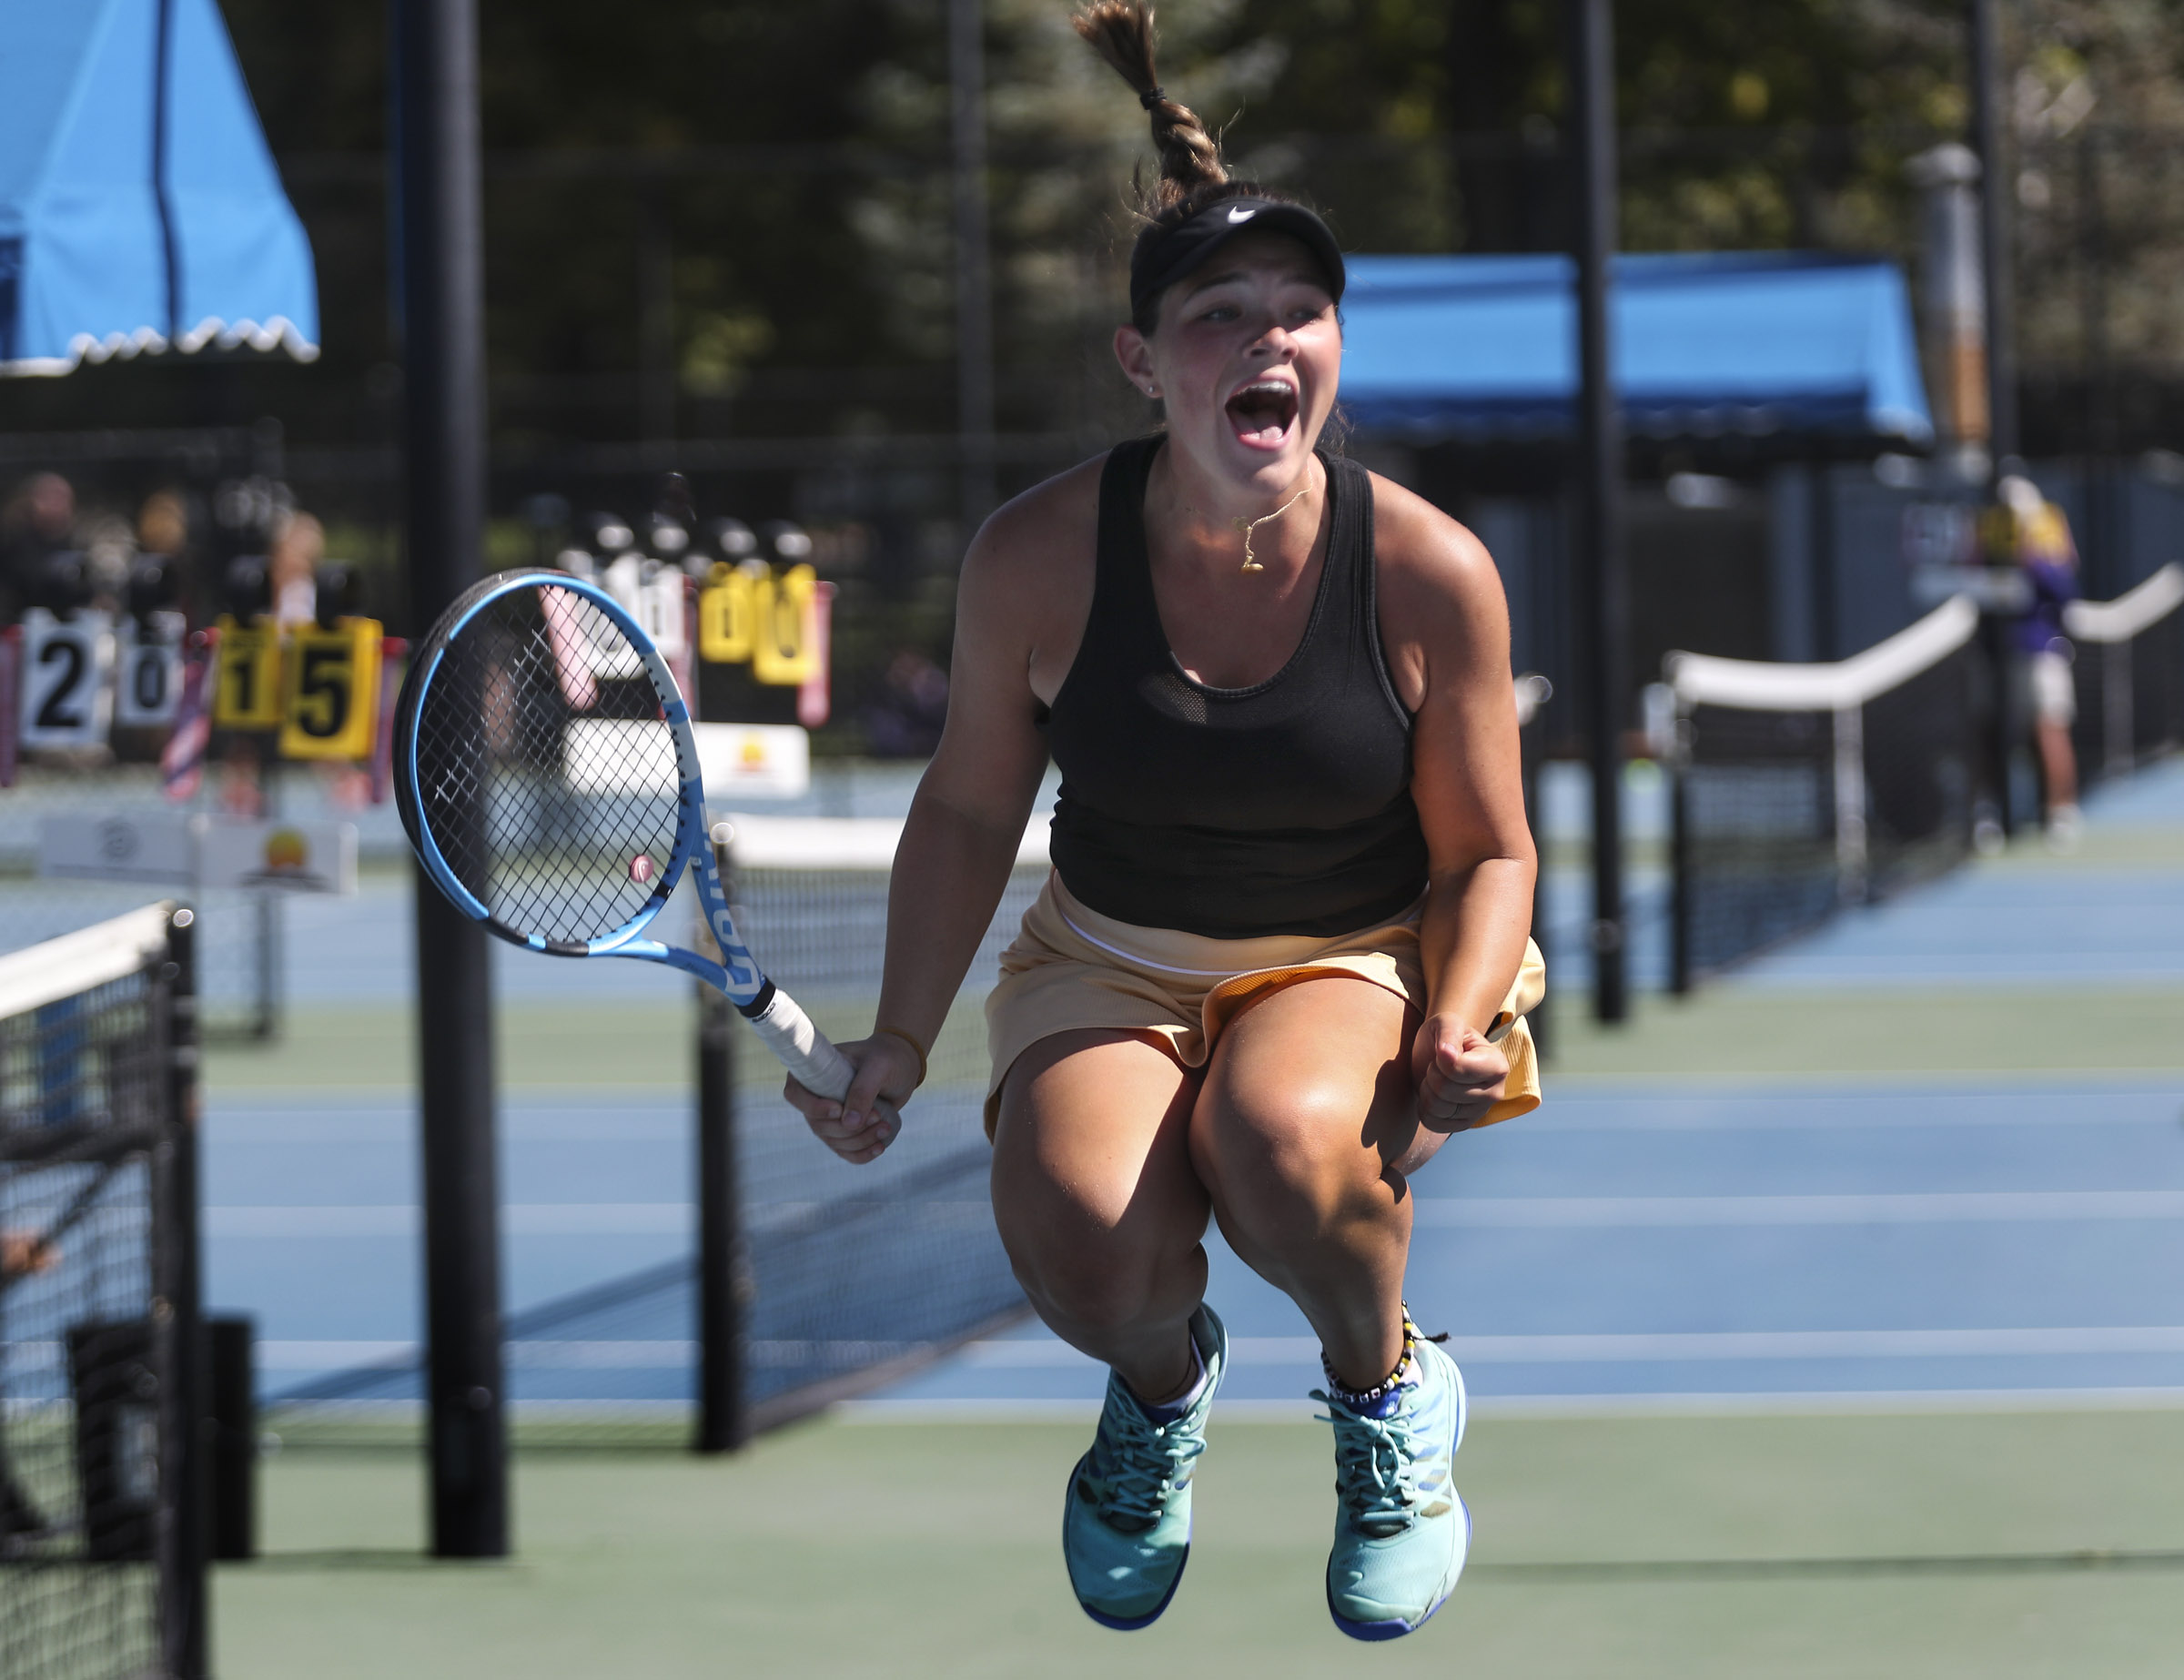 Desert Hills' Cassidy Kohler jumps into the air with excitement as she and her partner, Faith Hess, defeated Dixie for the first doubles championship during the 4A girl's tennis championships at Liberty Park in Salt Lake City on Saturday, Oct. 5, 2019.